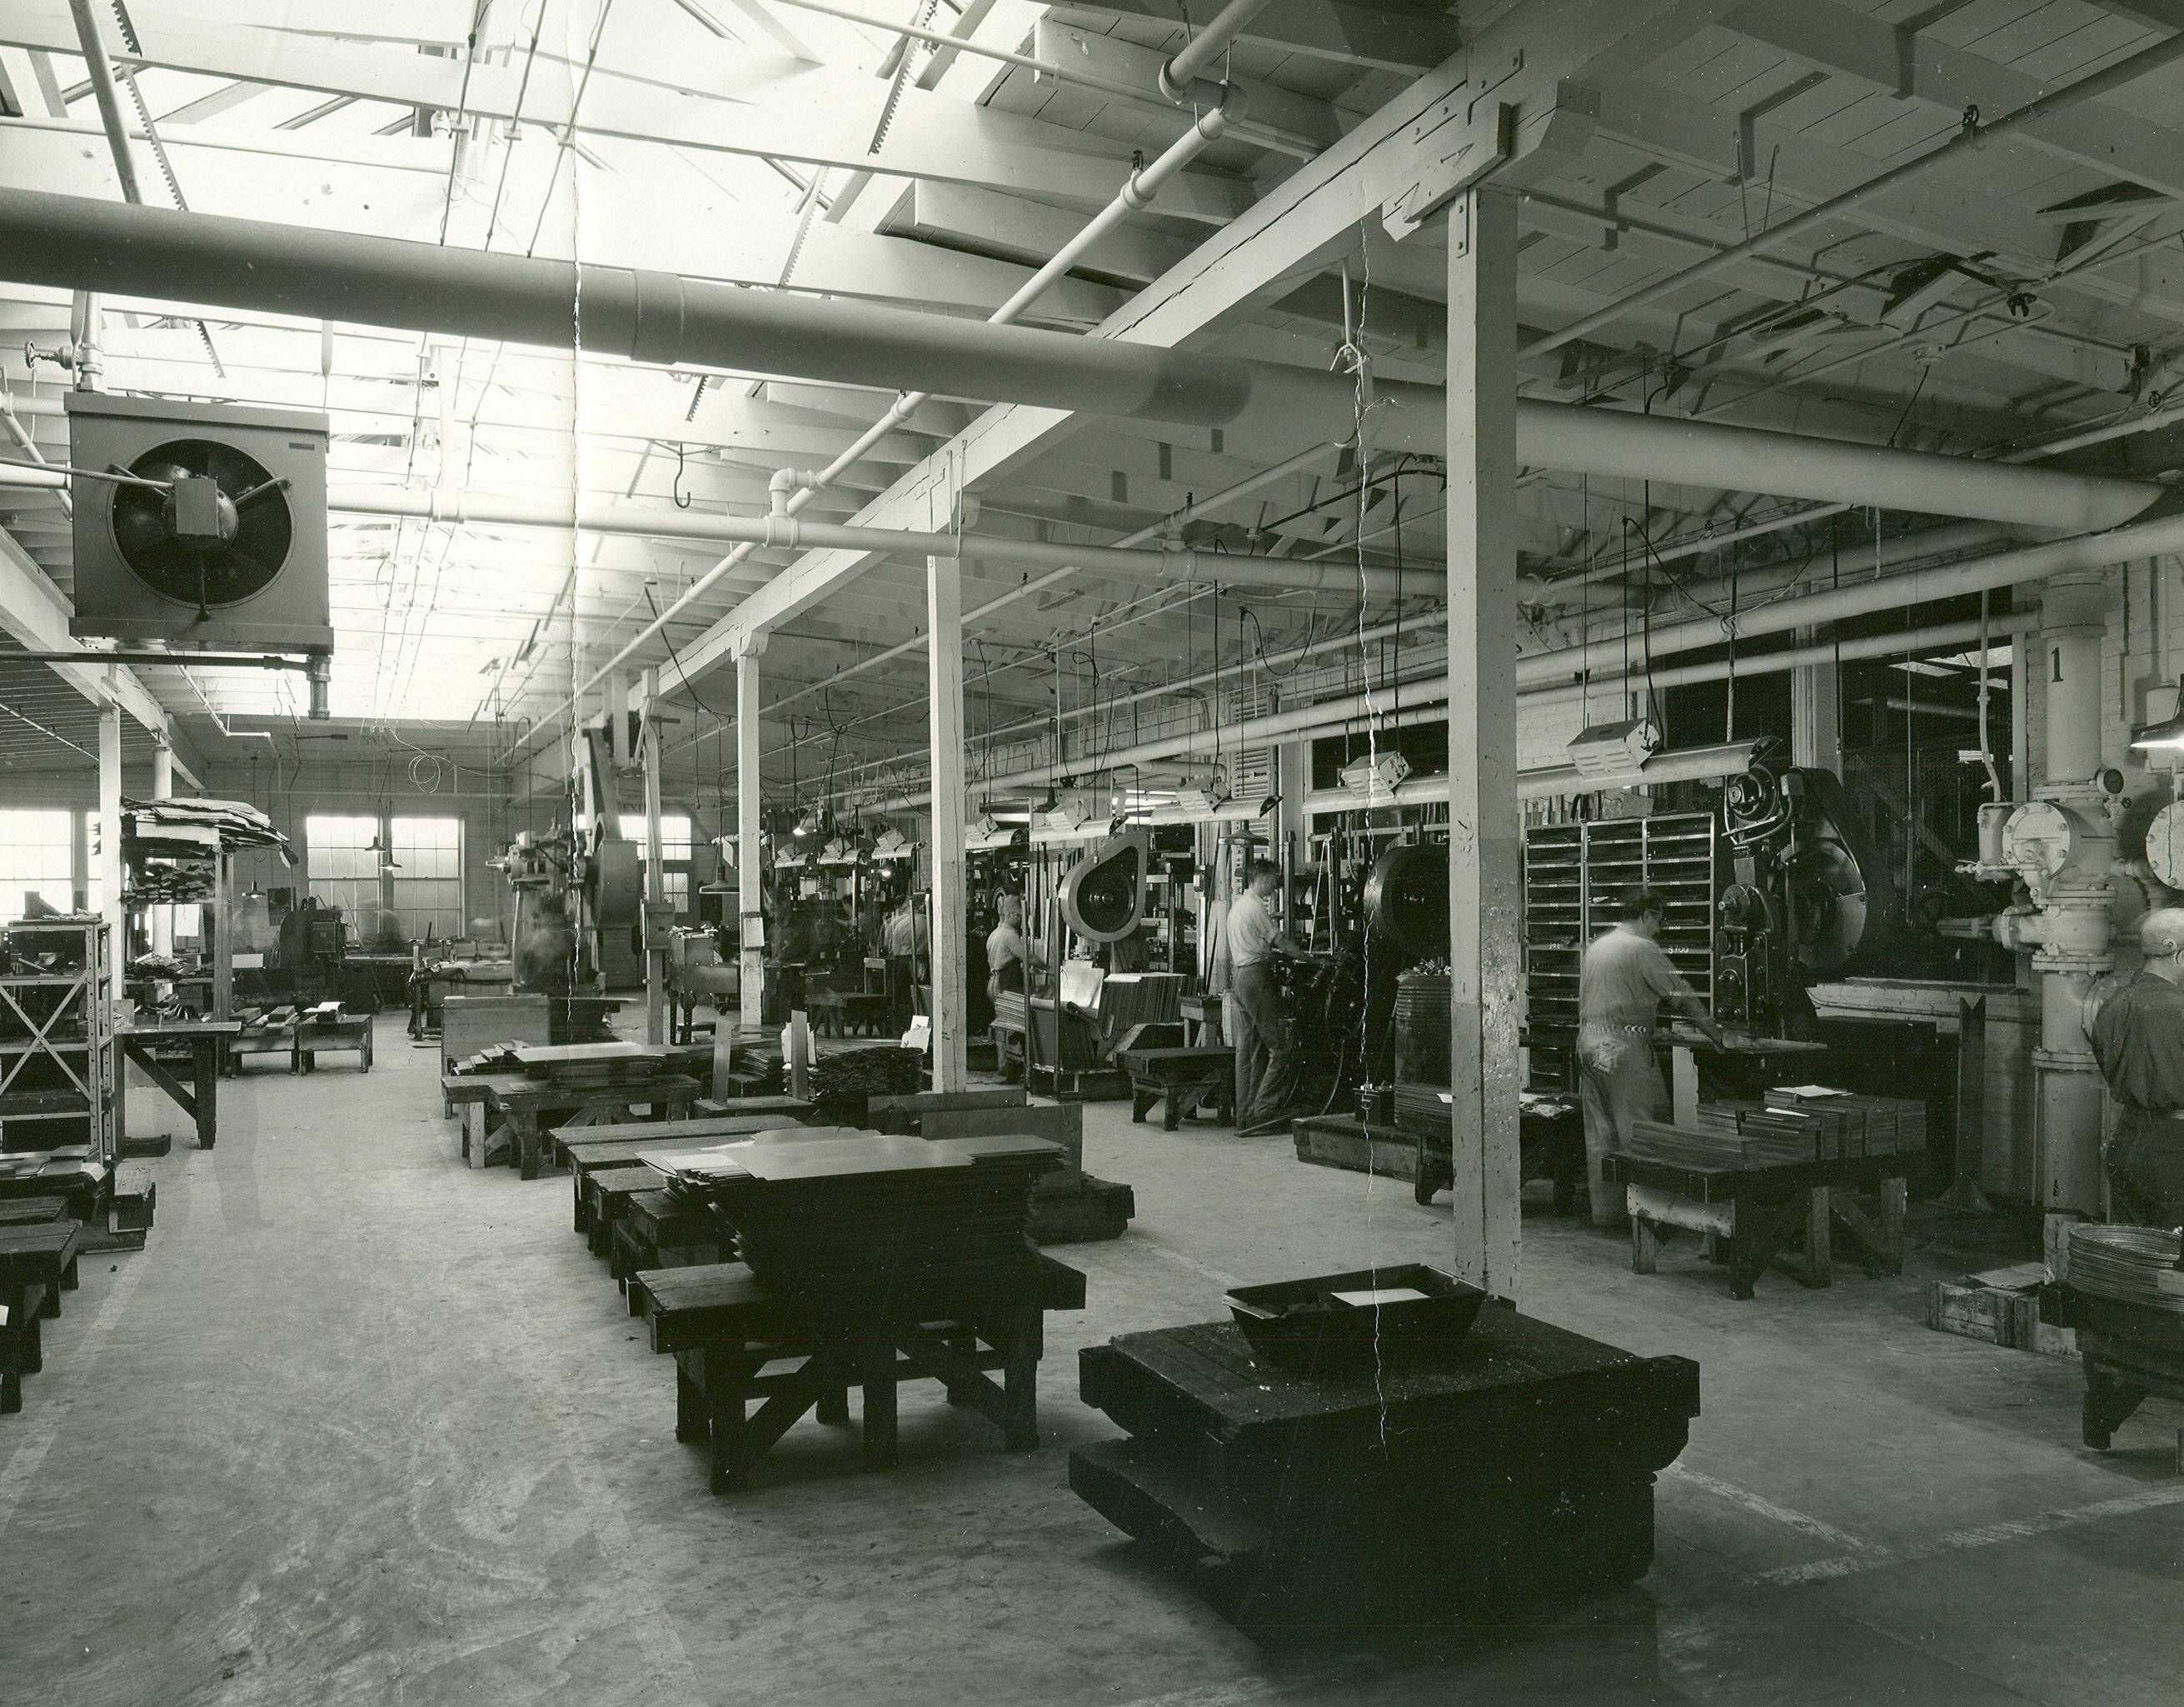 Genial St. Charles Manufacturing Company Warehouse. Organized In 1935, The St.  Charles Manufacturing